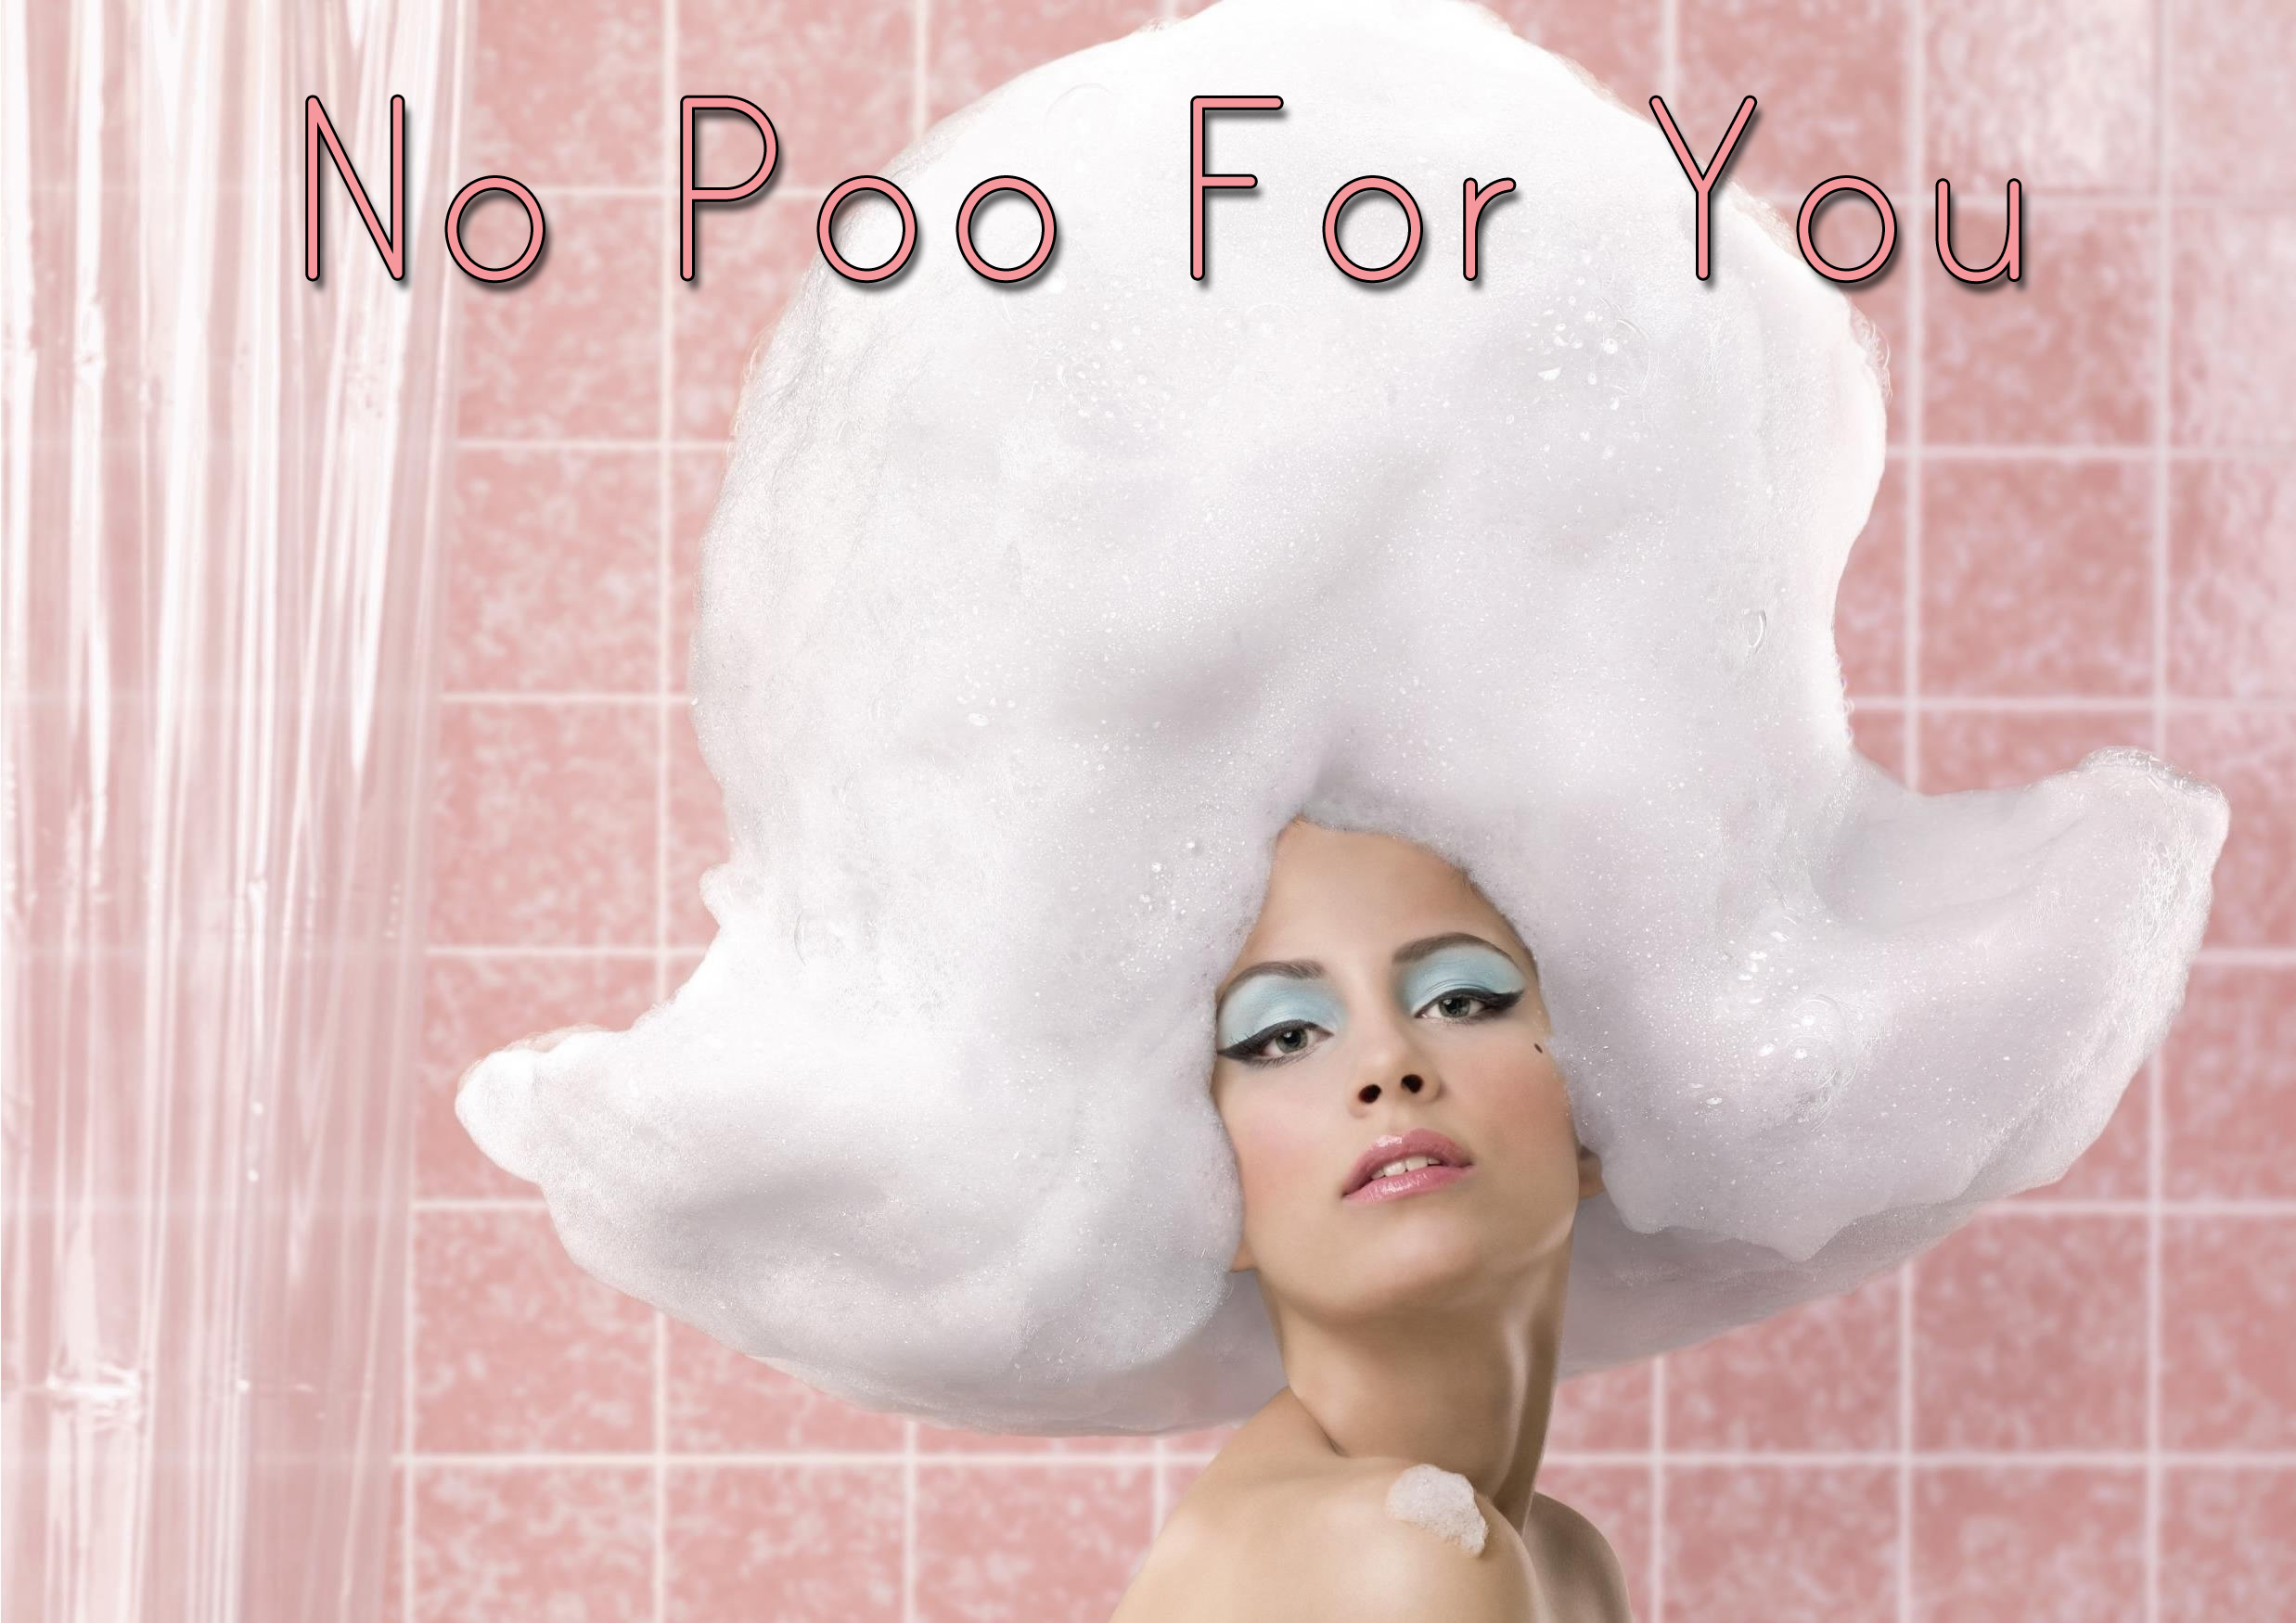 No poo for you